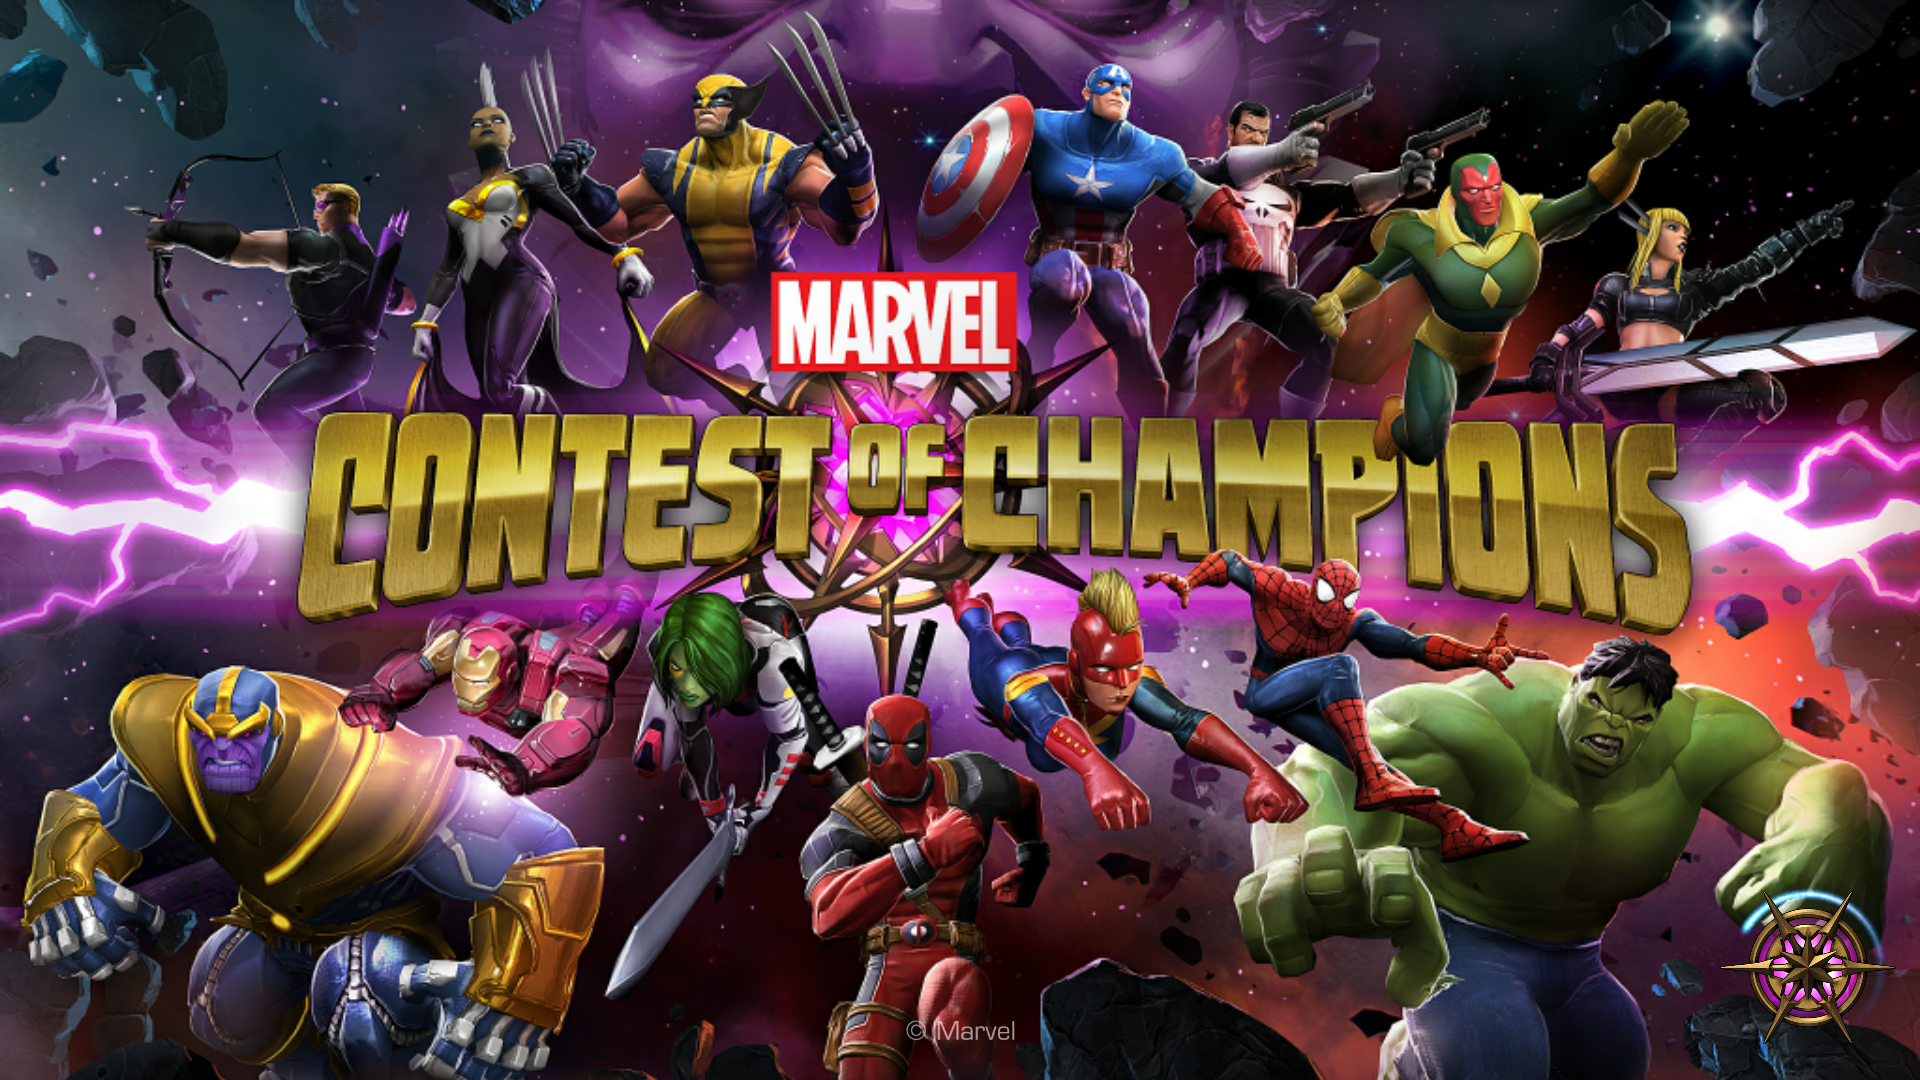 Marvel_Contest_of_Champions_(video_game)_logo-2.png